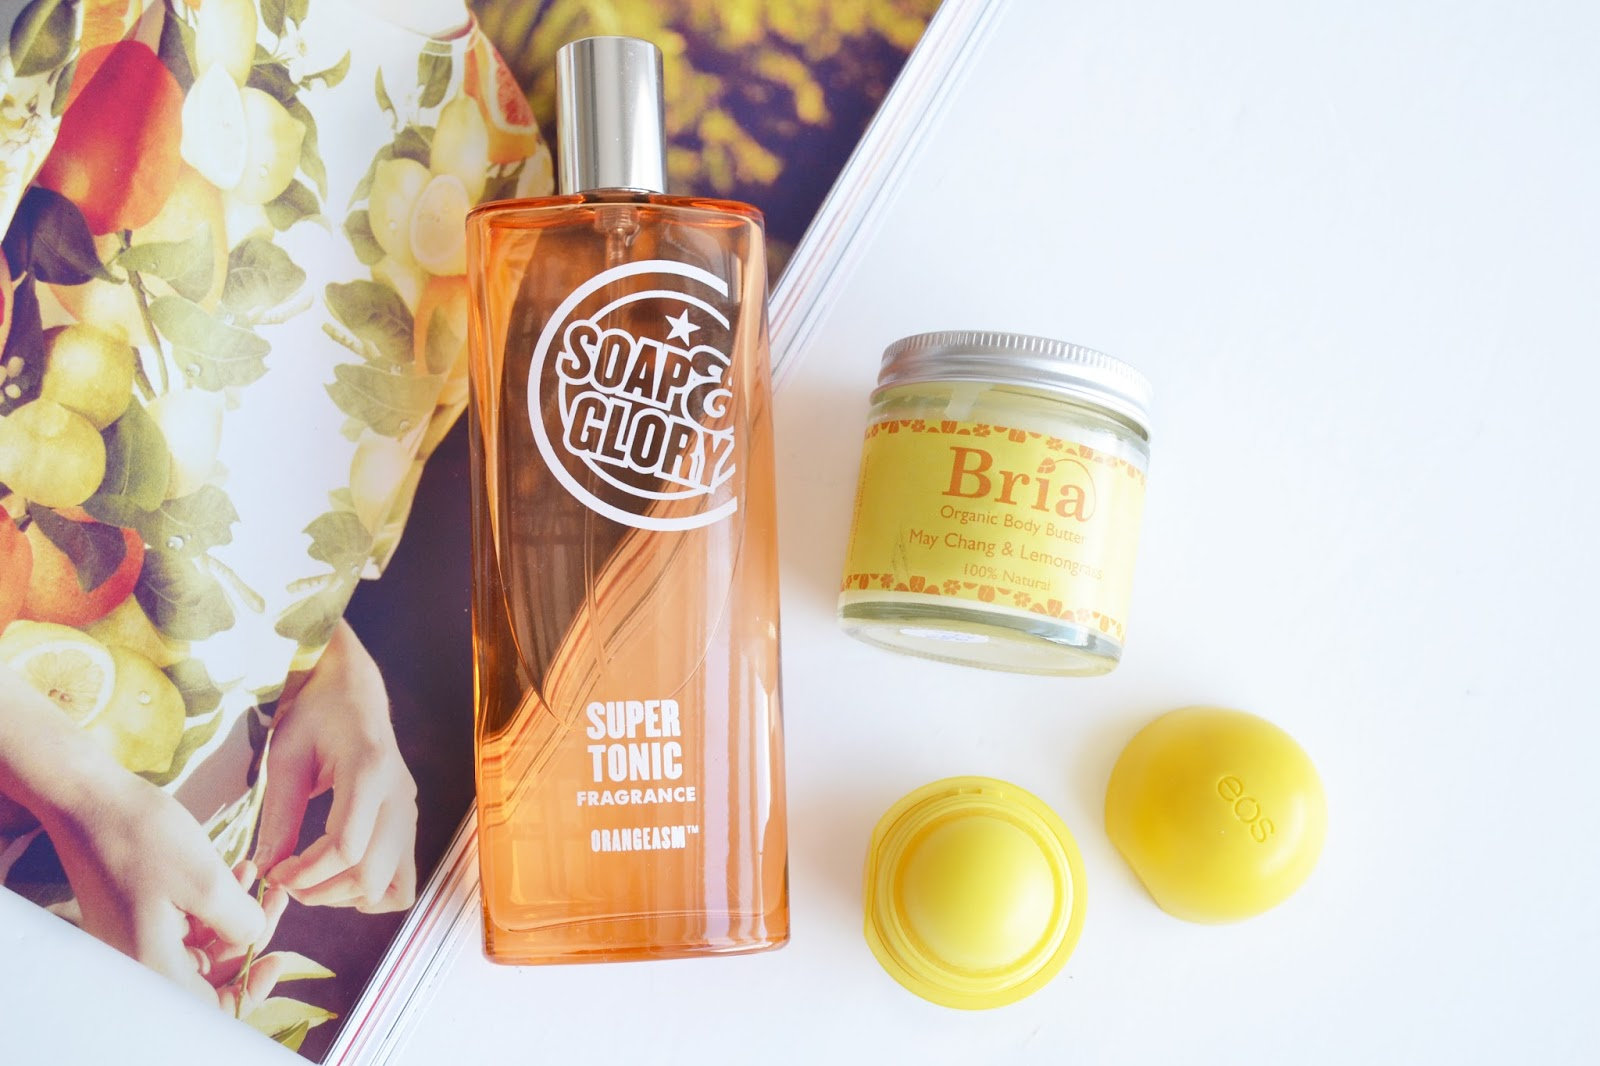 soap and glory super tonic fragrance